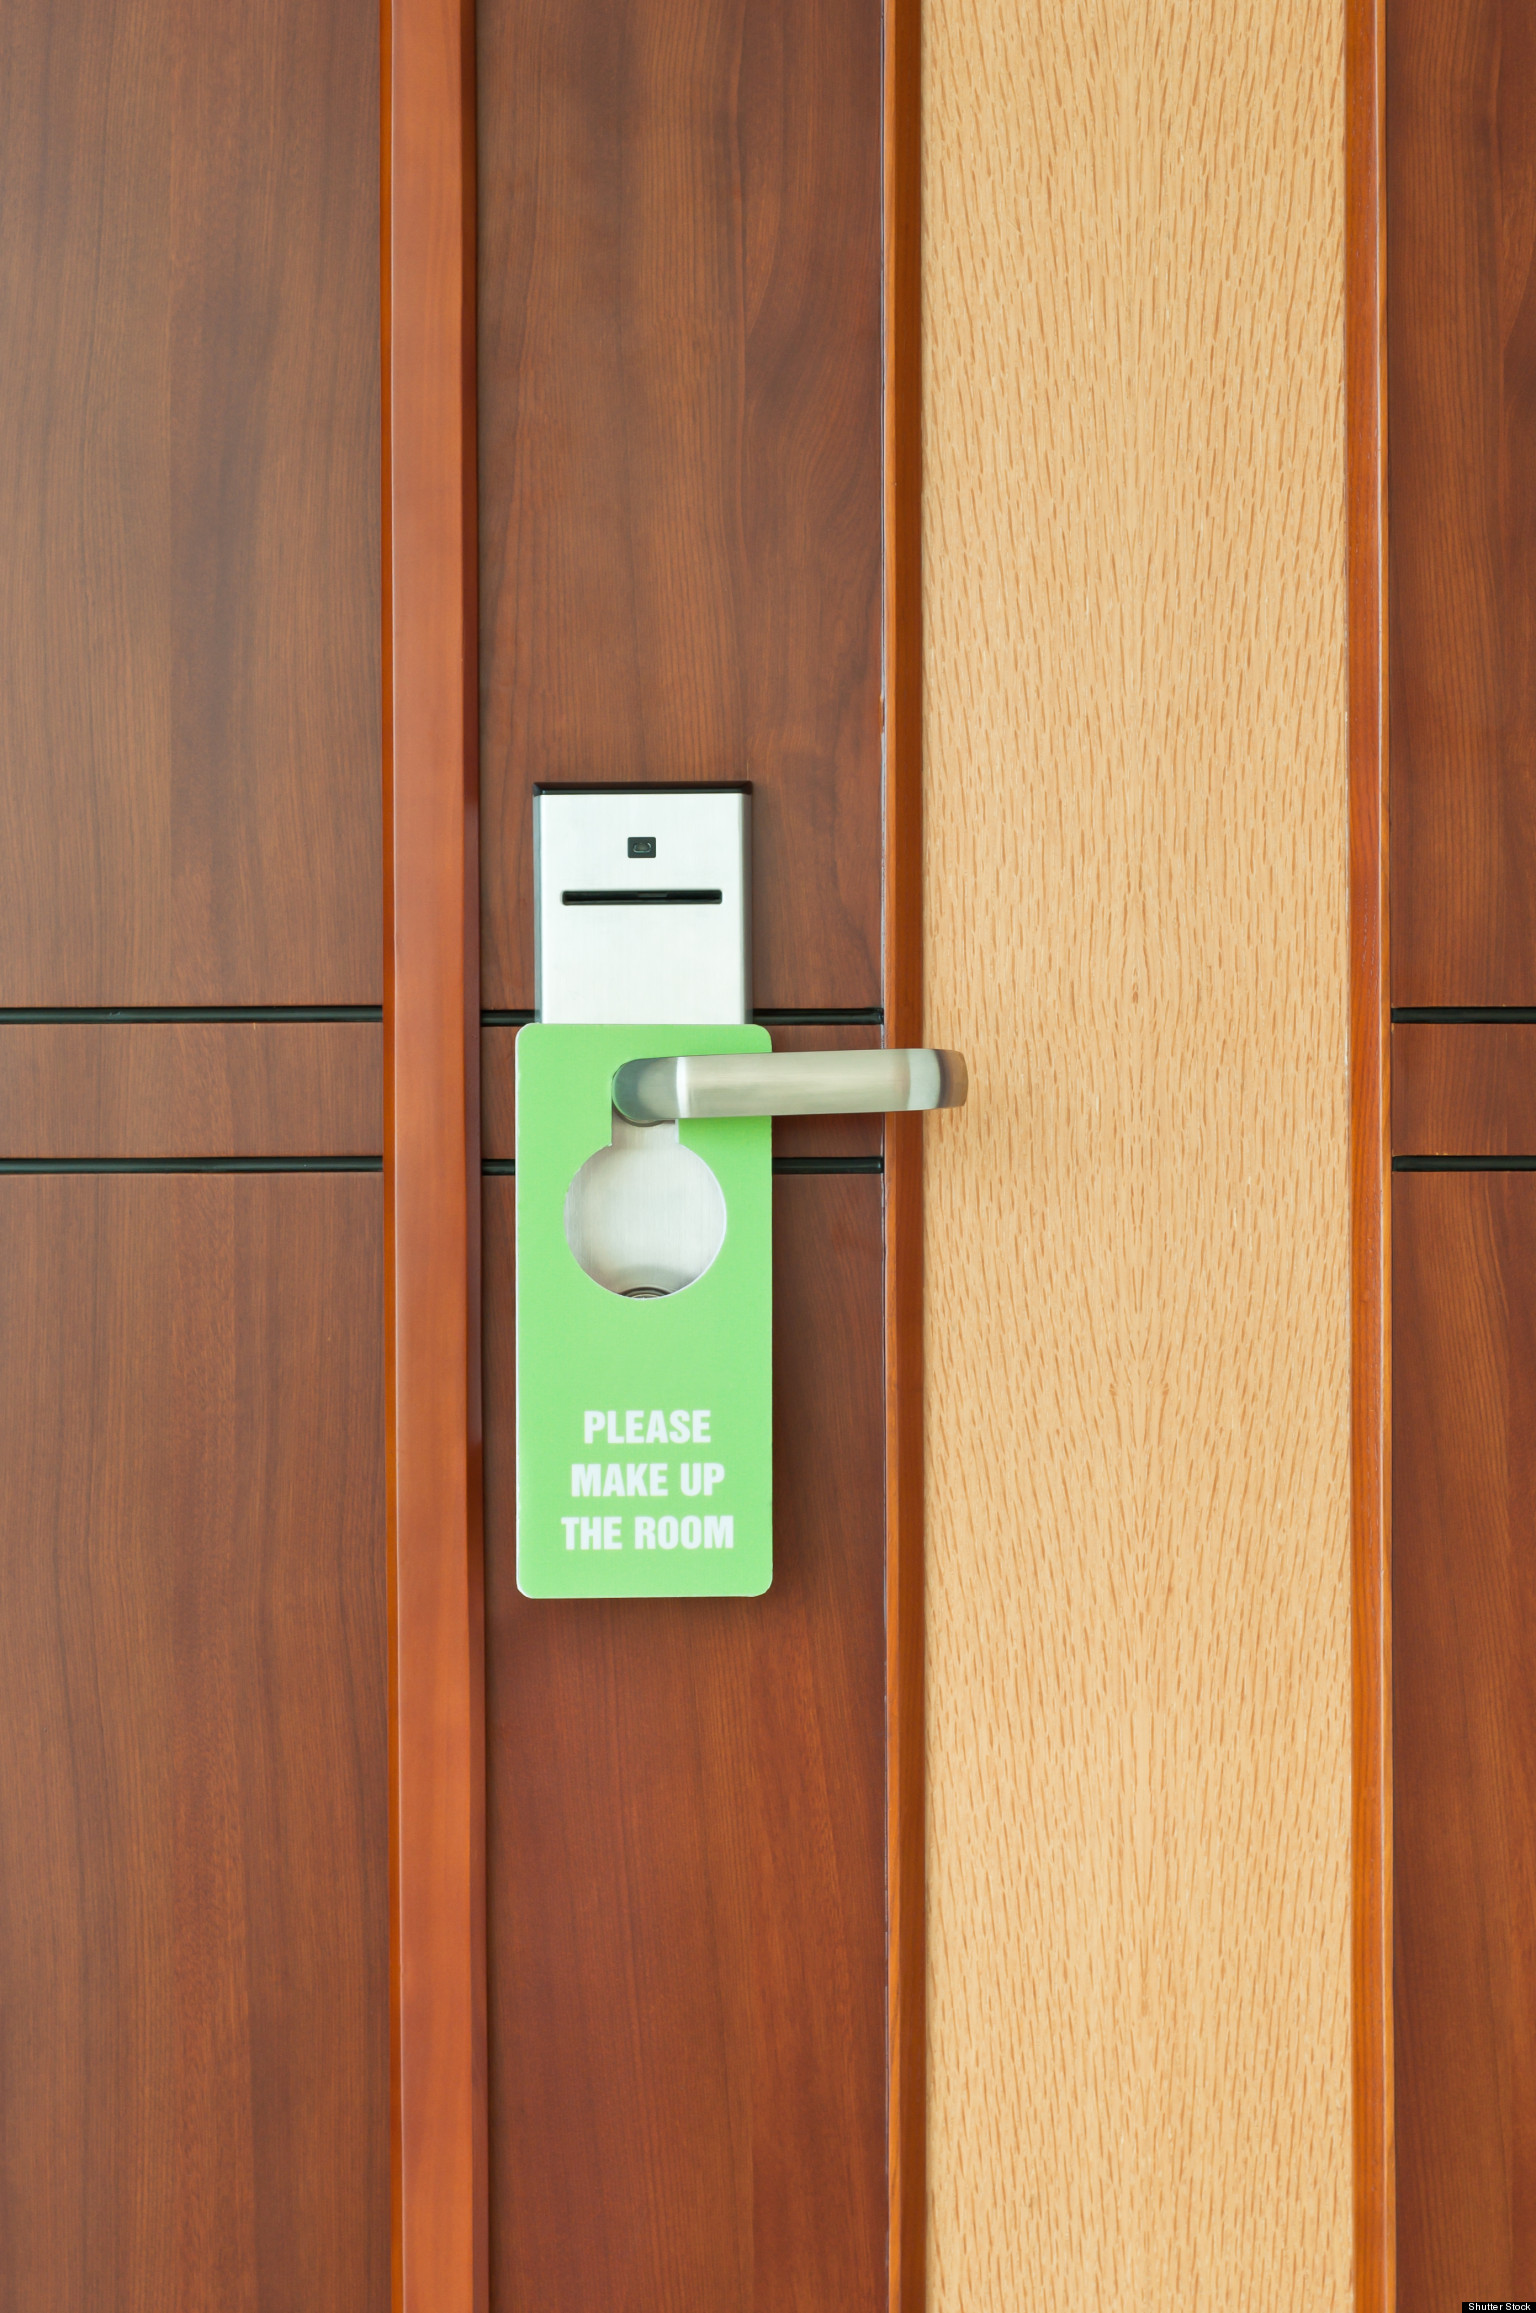 Security Flaw In Hotel Door Locks Leaves Guests Vulnerable To Crime | HuffPost & Security Flaw In Hotel Door Locks Leaves Guests Vulnerable To Crime ...